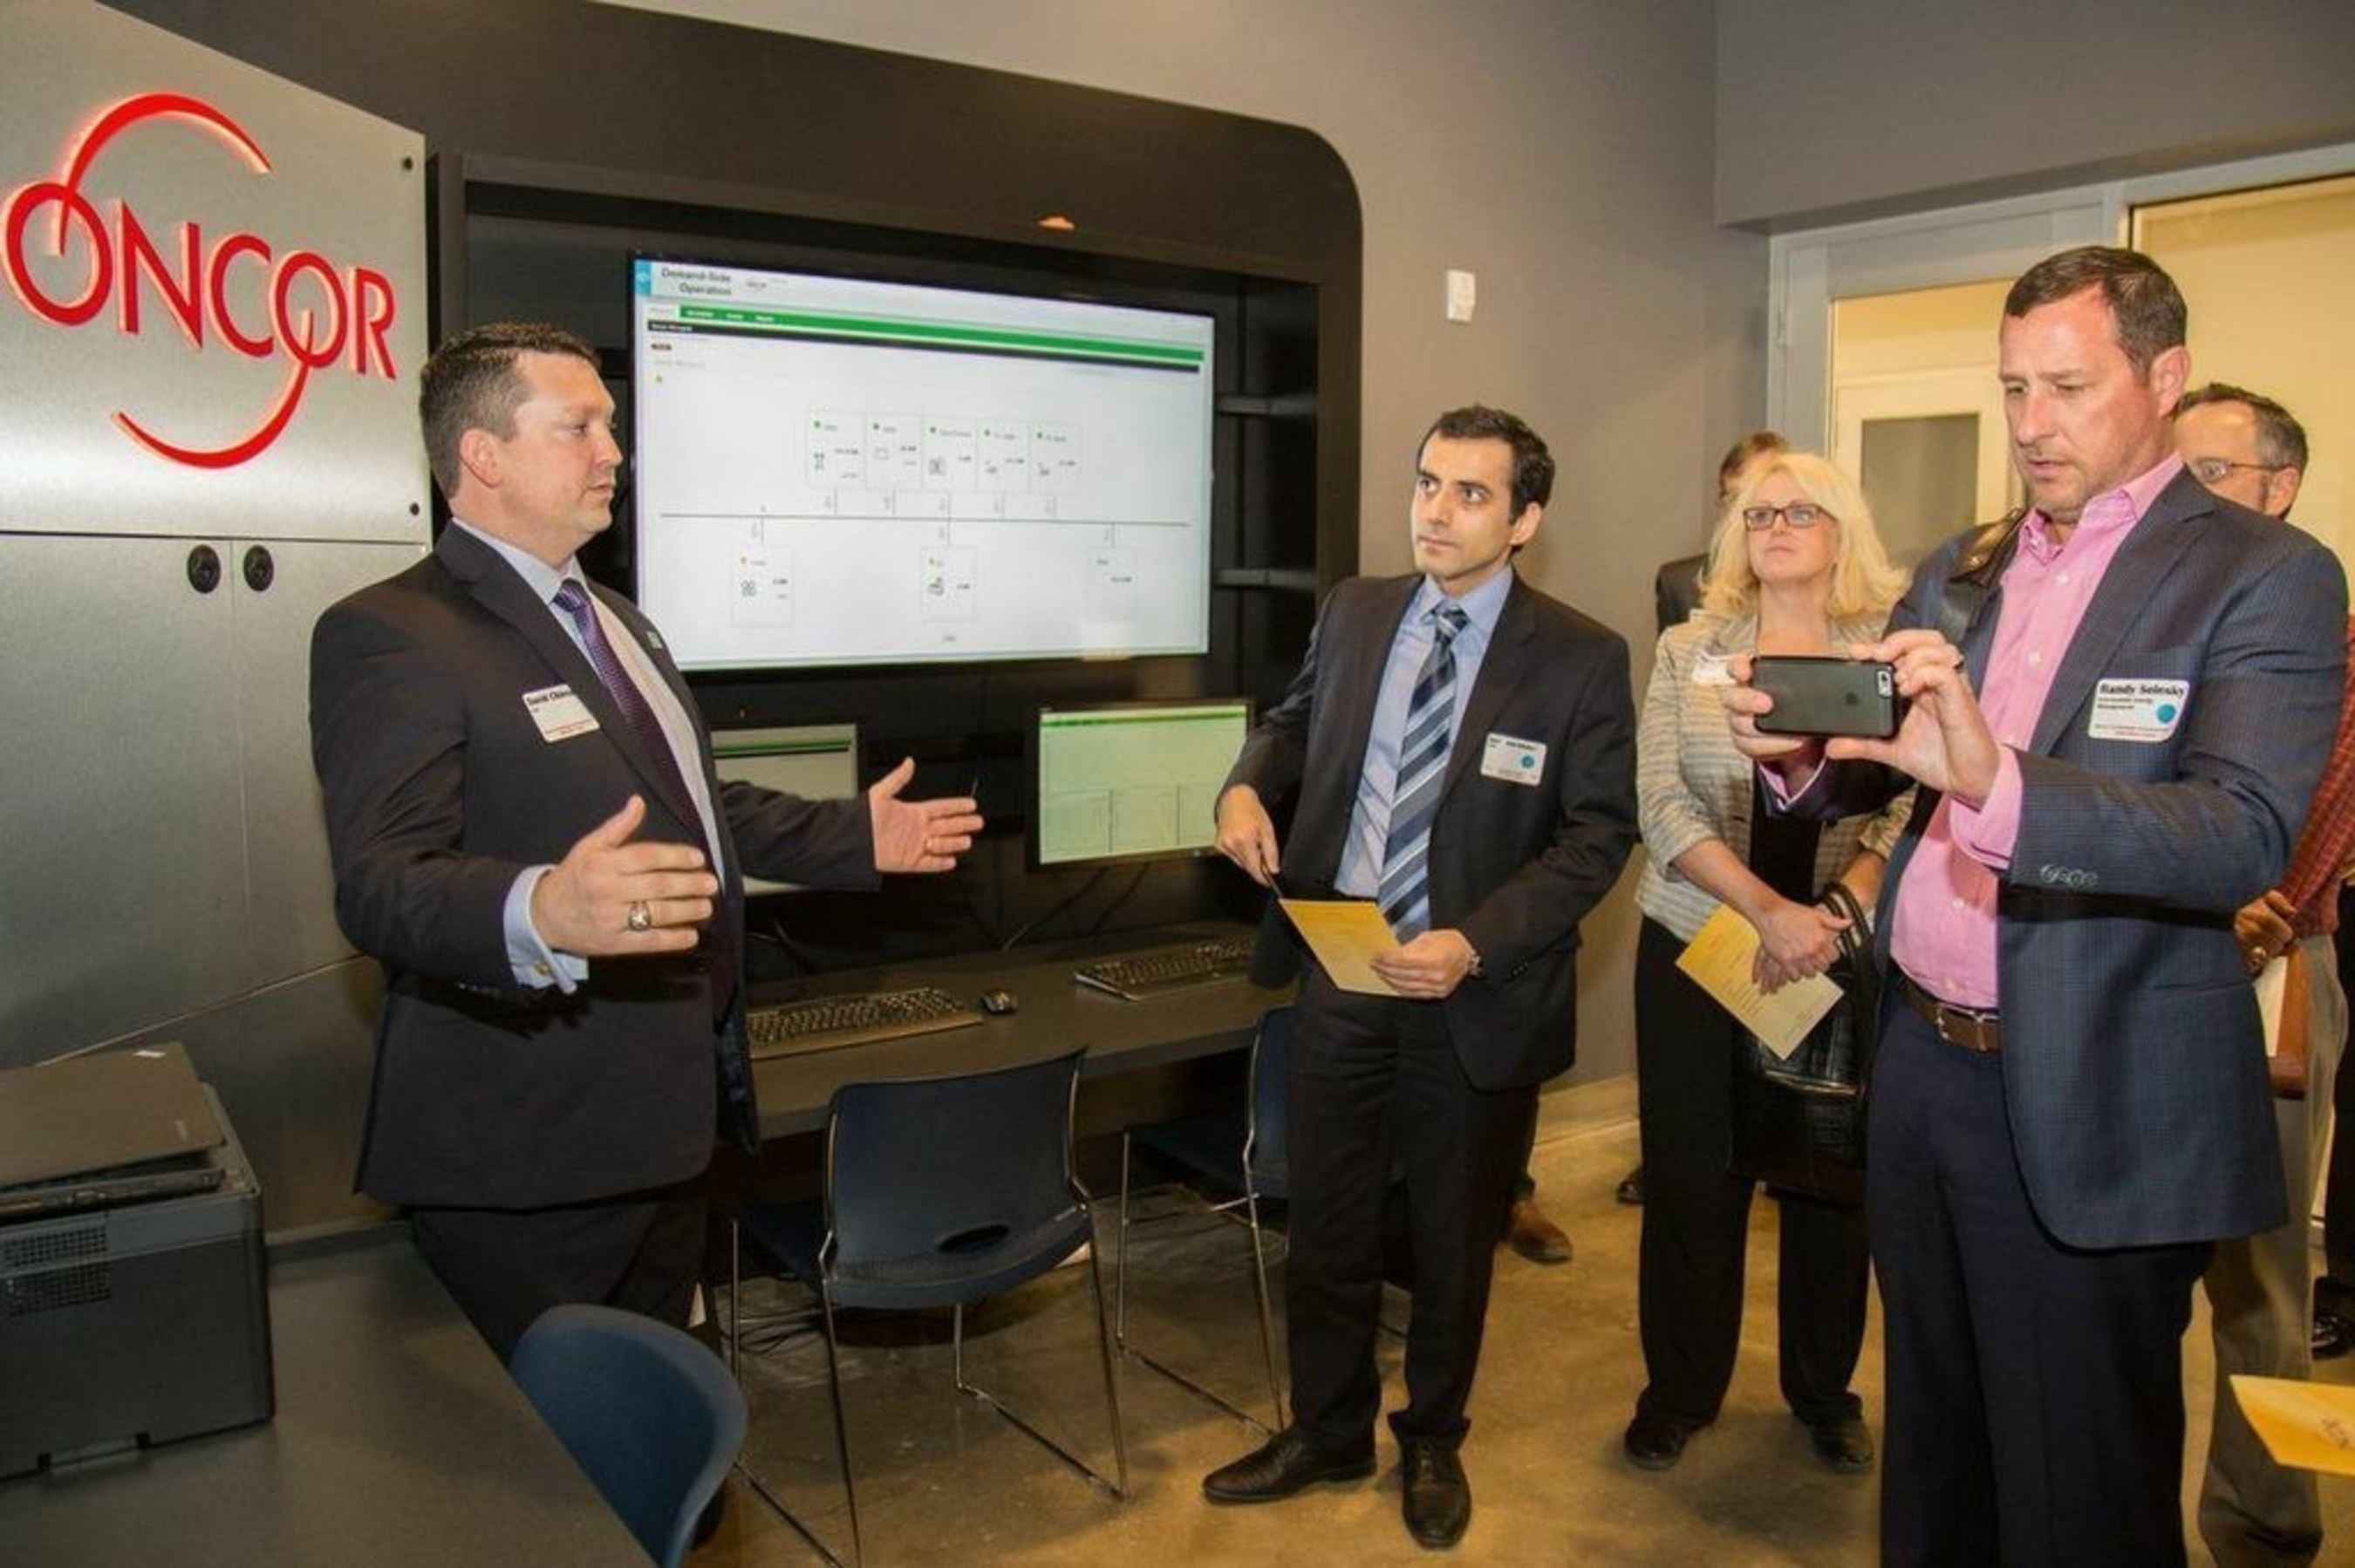 S Amp C Schneider Electric And Oncor Complete Innovative